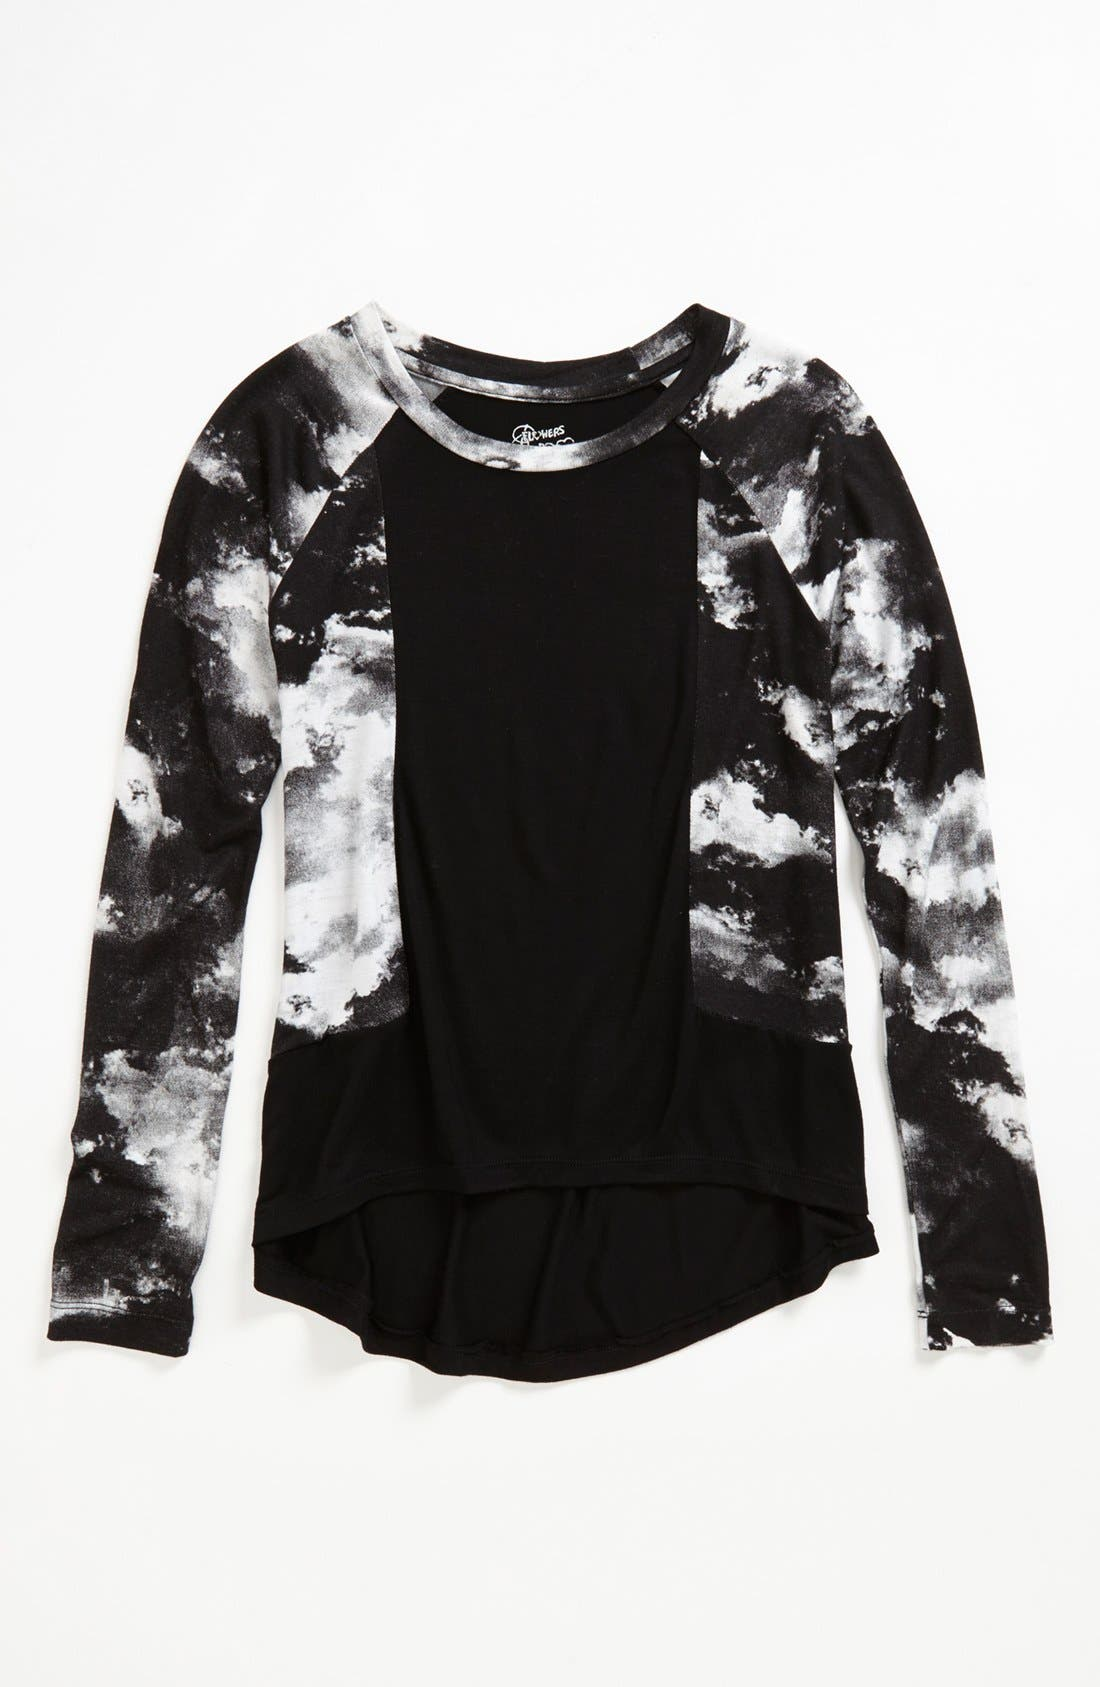 Alternate Image 1 Selected - Flowers by Zoe Tie Dye High/Low Tunic Top (Big Girls) (Online Only)